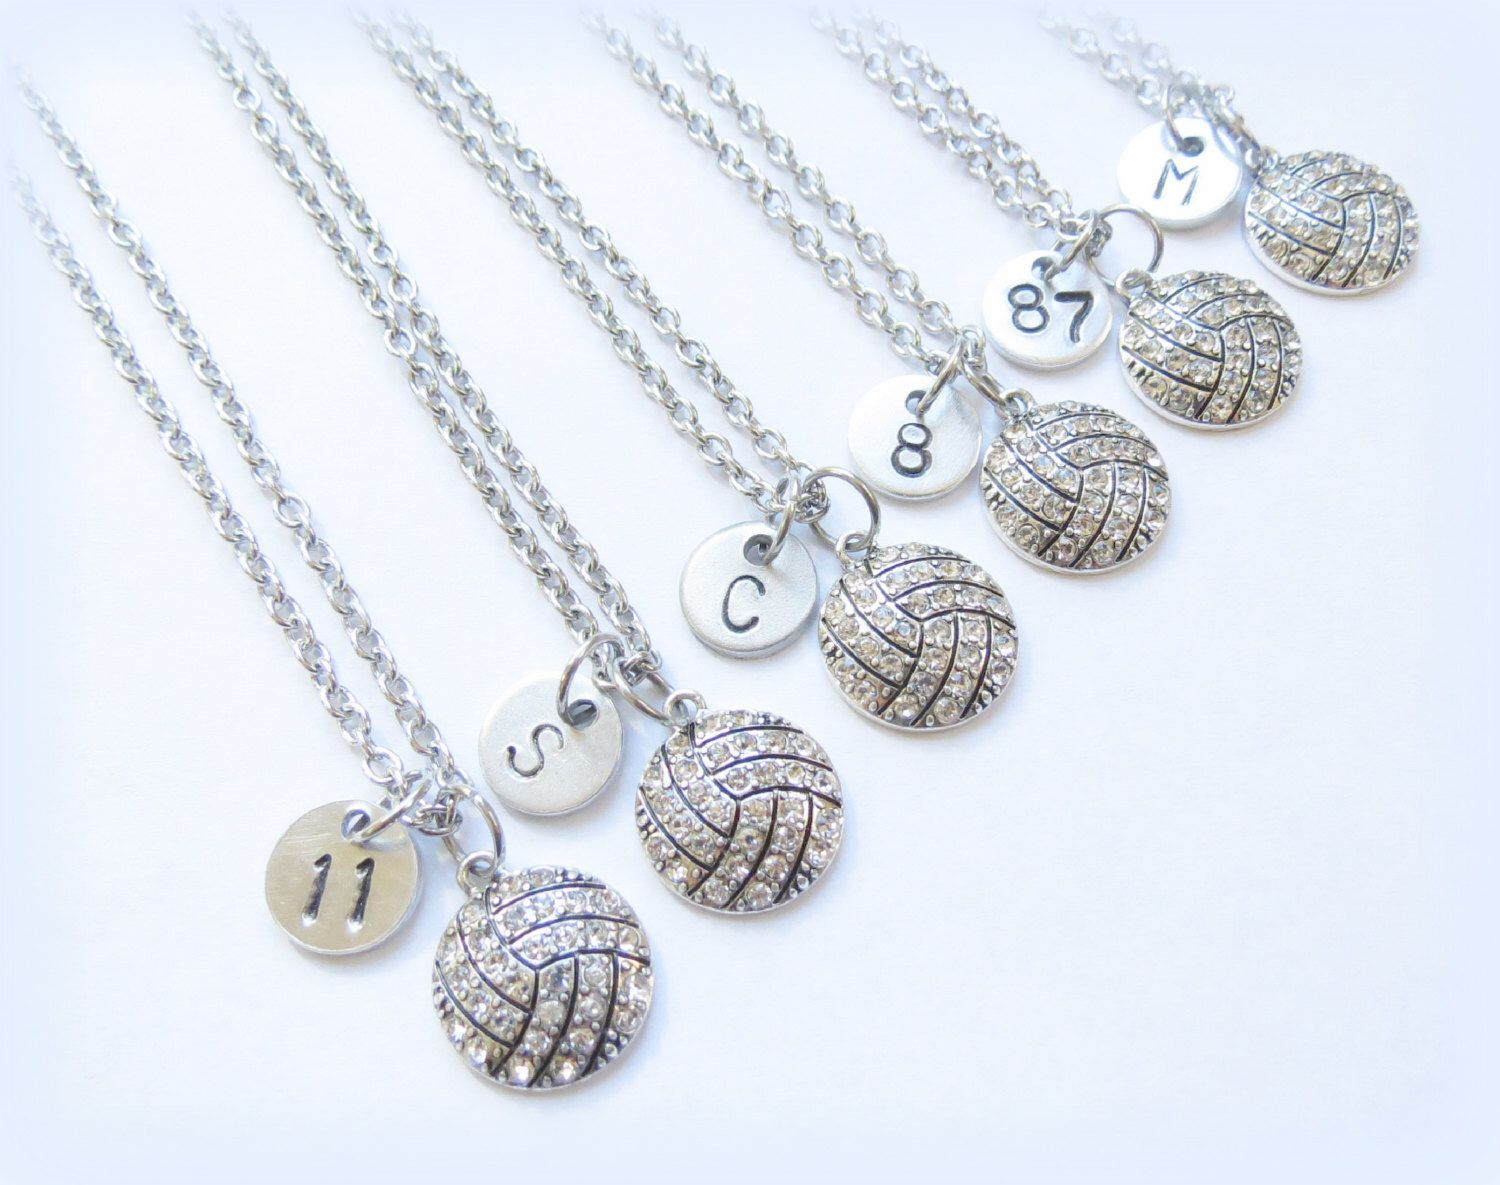 Personalized Volleyball Necklace Jewelry Volleyball Team Jewelry Volleyball Team Gift Initial Or Jersey Number Volleyball Necklace With Images Volleyball Necklace Volleyball Jewelry Volleyball Jewelry Necklace